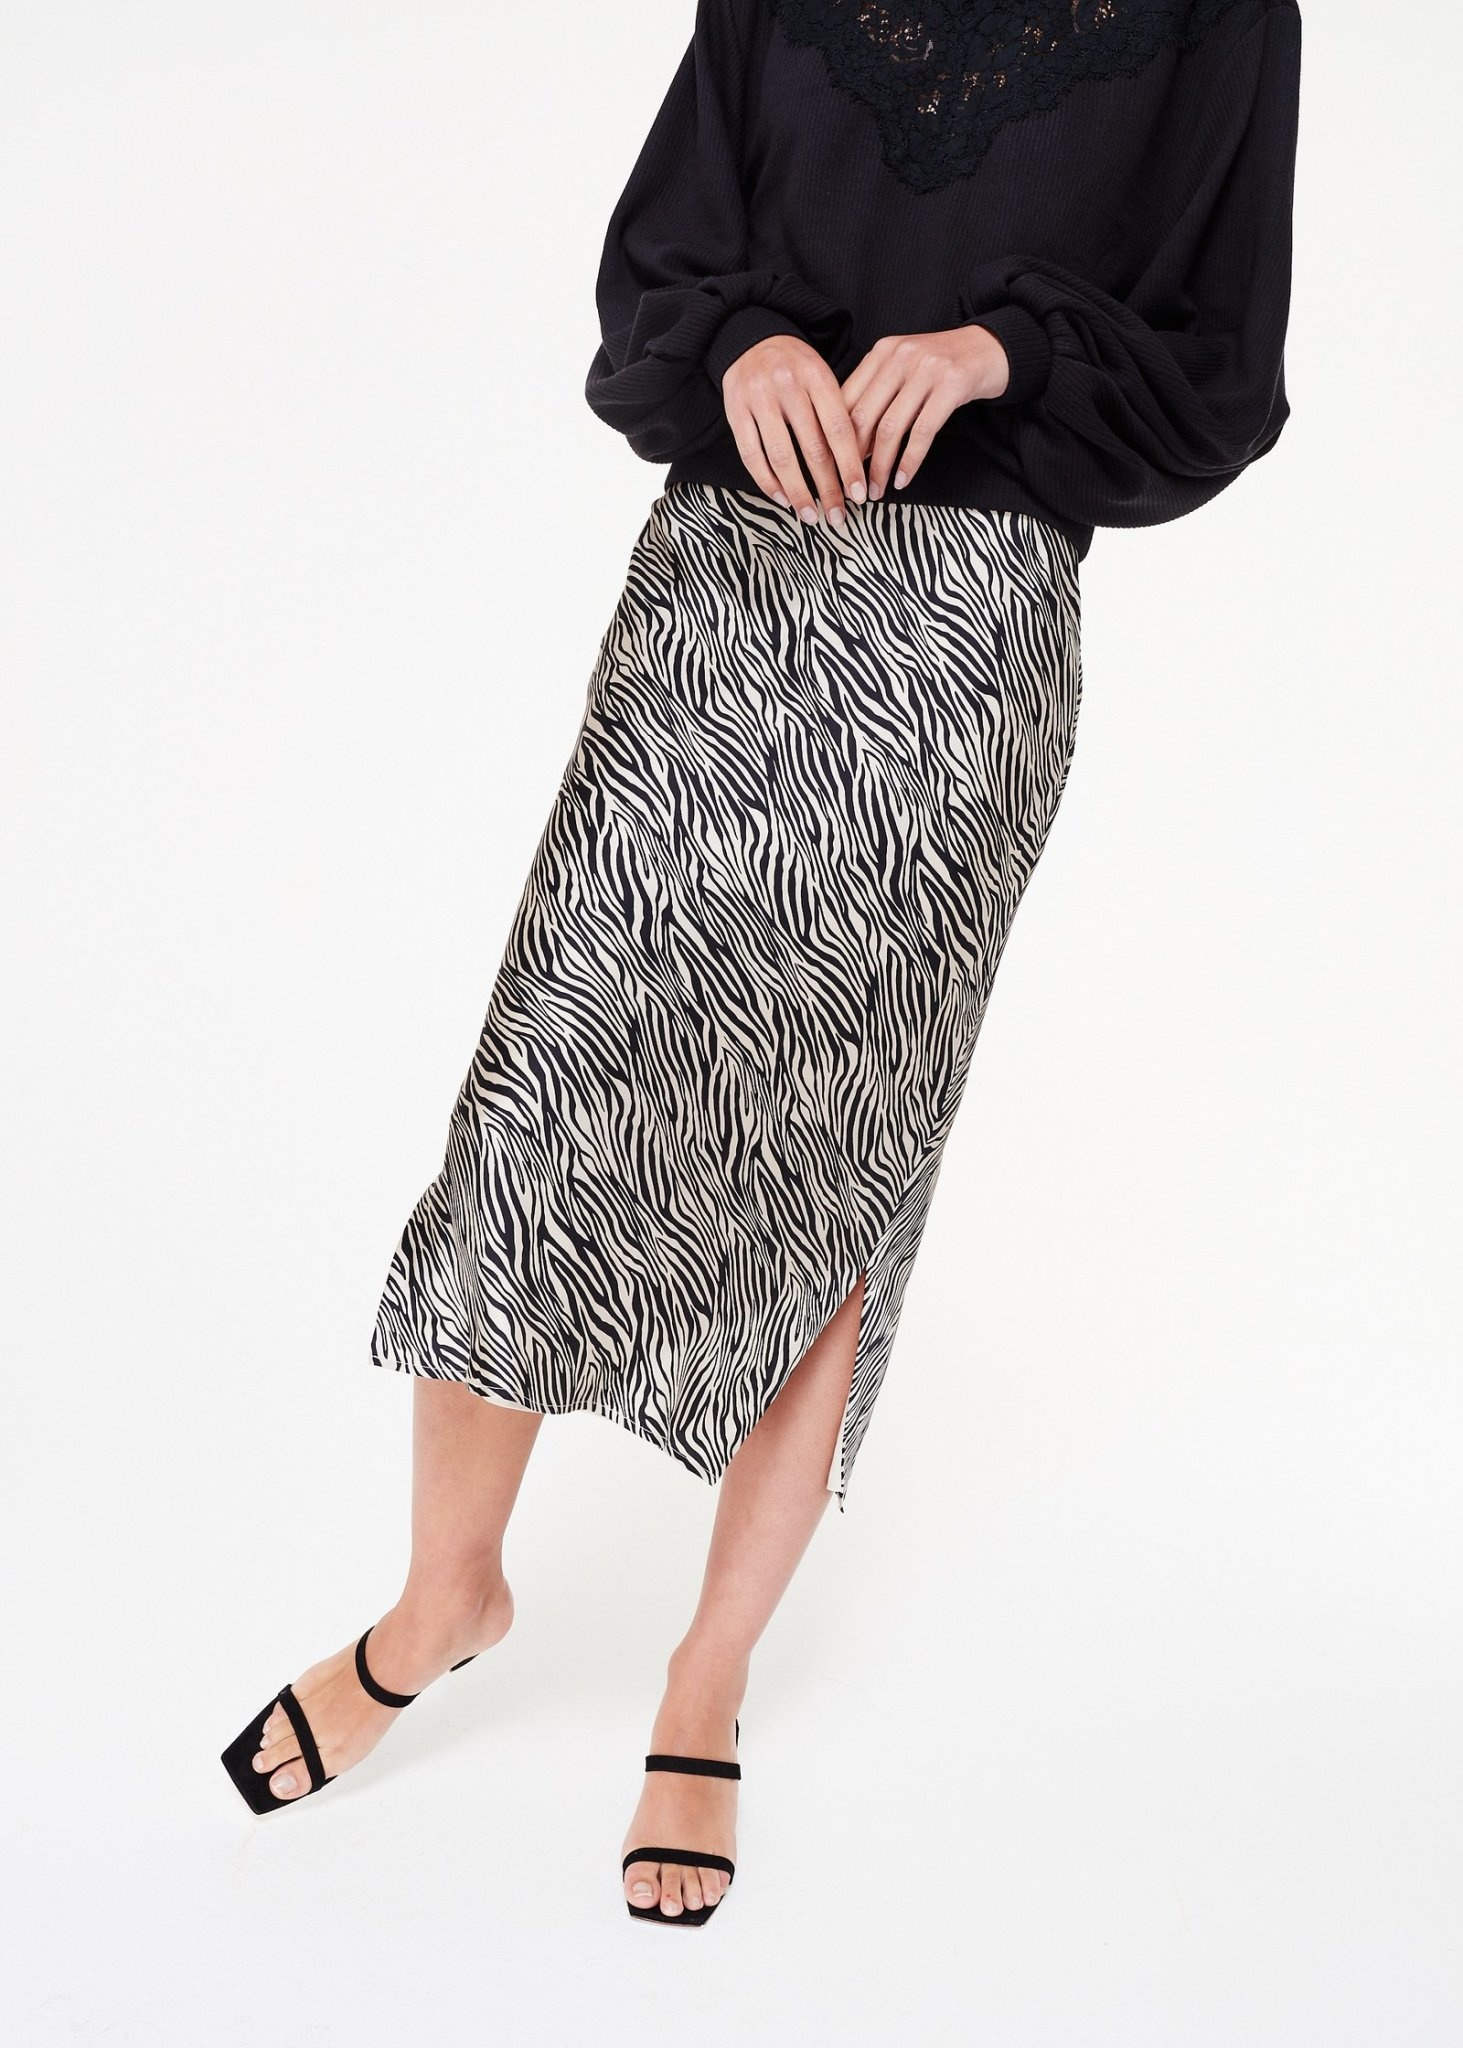 Cami NYC Jessica Skirt